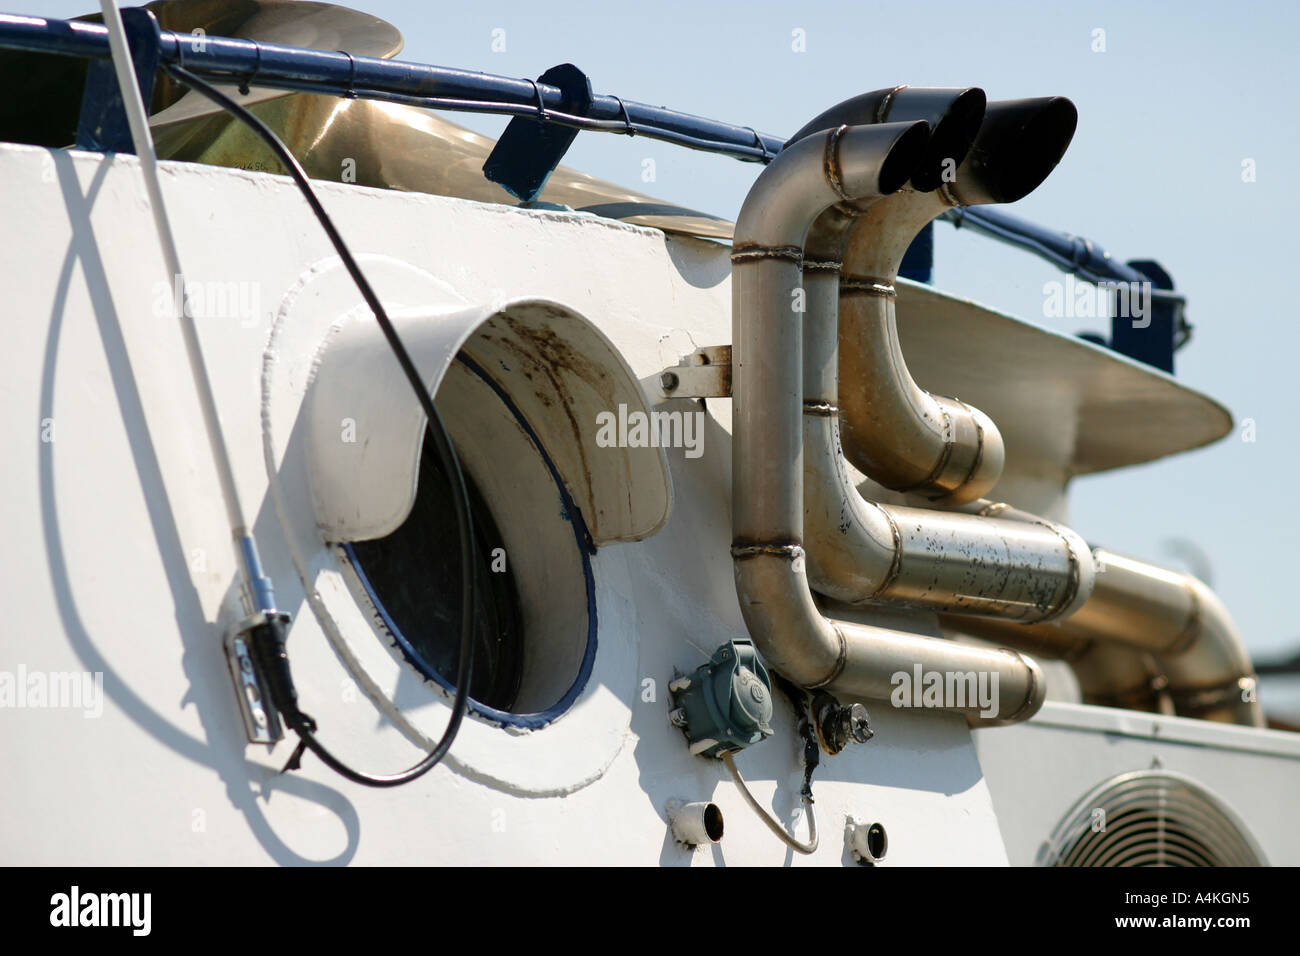 Pipes on boat, close-up - Stock Image